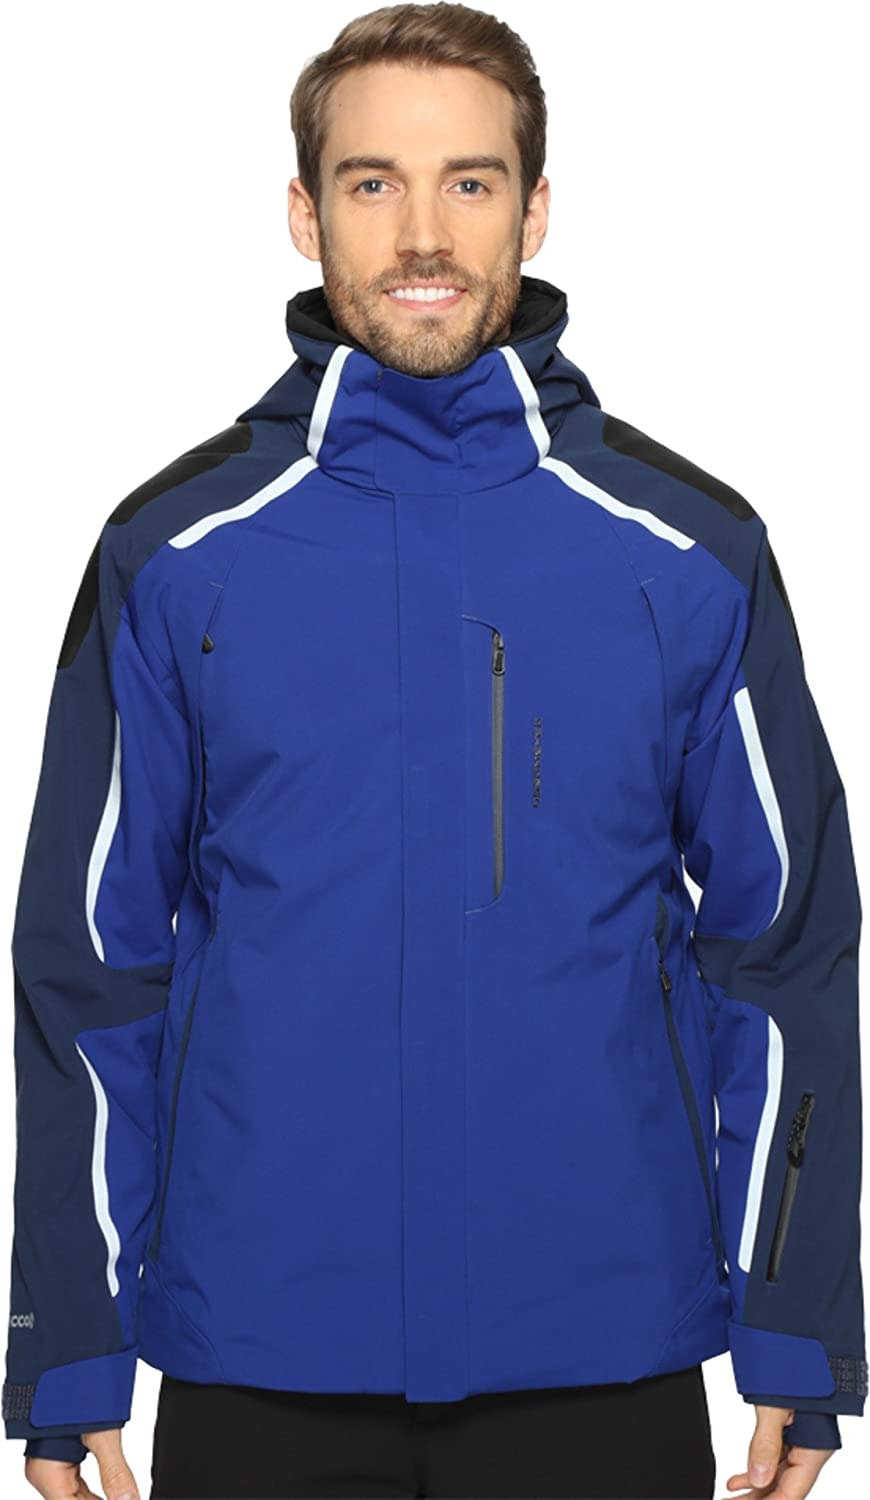 Sale Now on sale special price Obermeyer Mens Jacket Charger